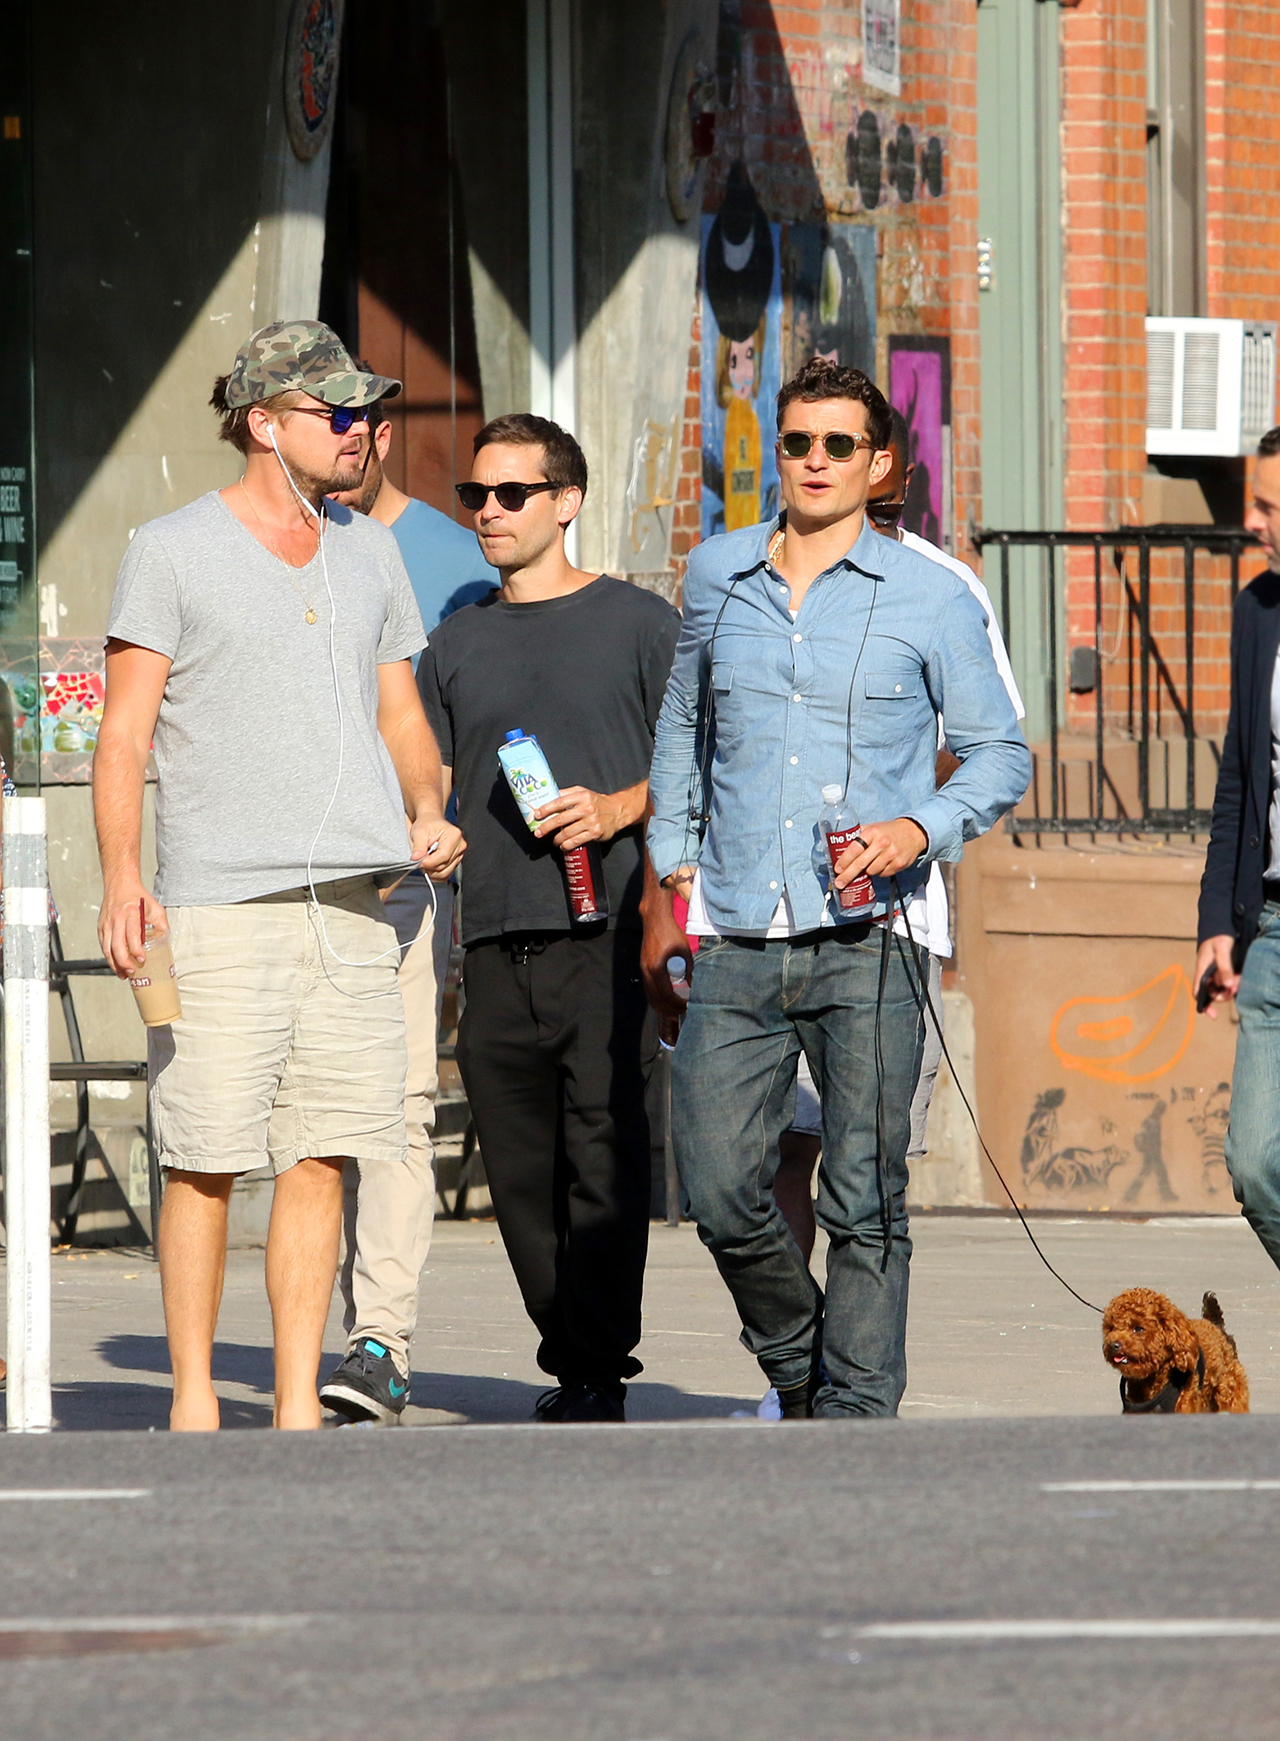 Leonardo DiCaprio, Tobey Maguire and Orlando Bloom meet up and hang out as they went for a long walk with friends after having a late afternoon lunch and stopping for ice cream in Manhattan's East Village Neighborhood. 14 Jun 2017 Pictured: Leonardo DiCaprio, Tobey Maguire and Orlando Bloom. Photo credit: LRNYC / MEGA TheMegaAgency.com +1 888 505 6342 (Mega Agency TagID: MEGA42466_002.jpg) [Photo via Mega Agency]